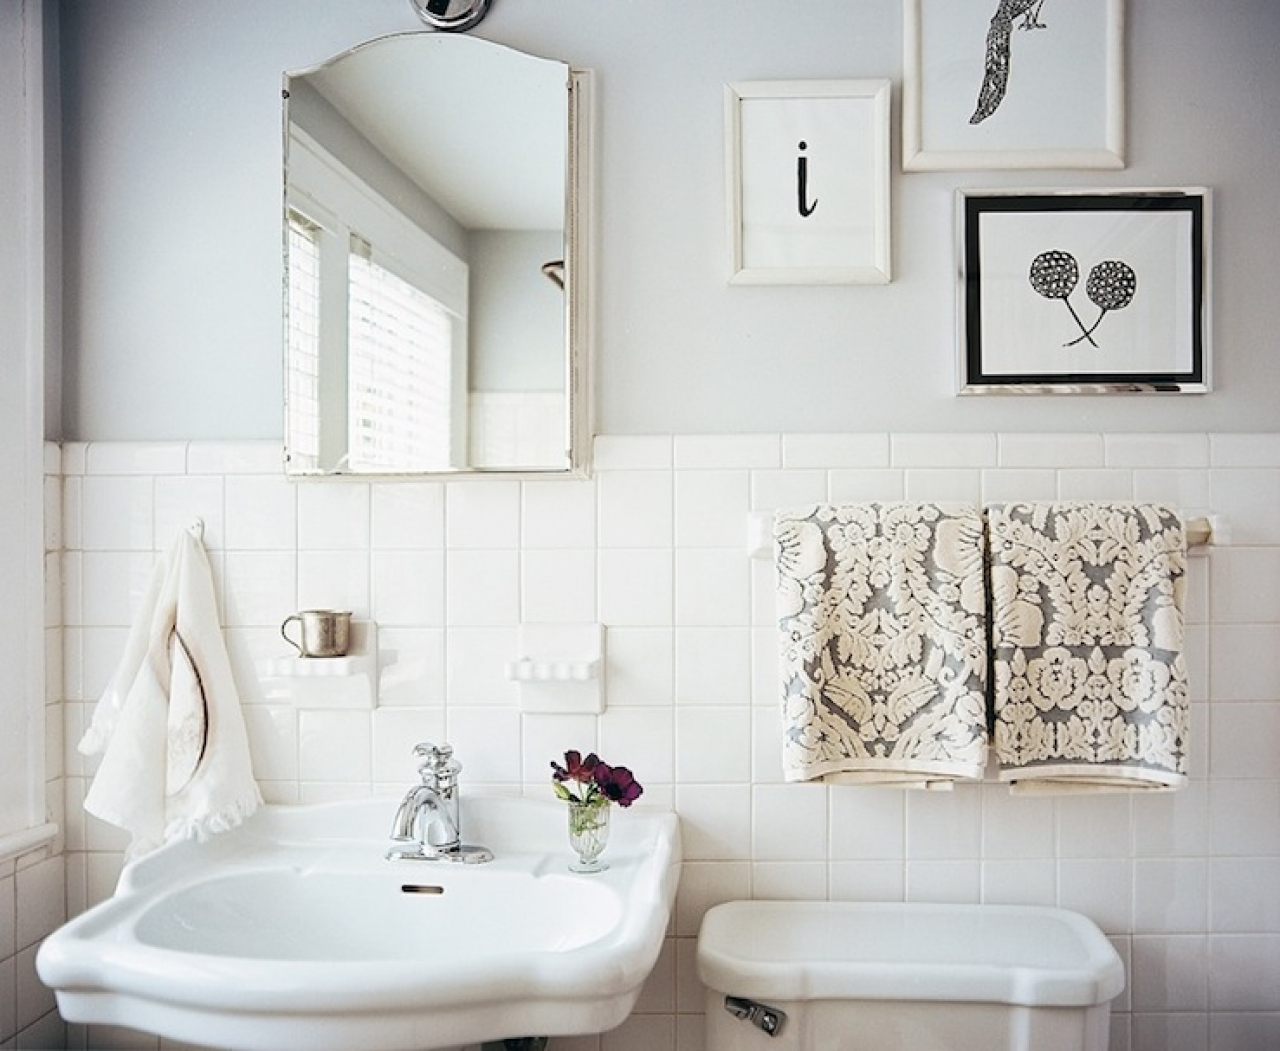 33 amazing pictures and ideas of old fashioned bathroom for Vintage bathroom photos